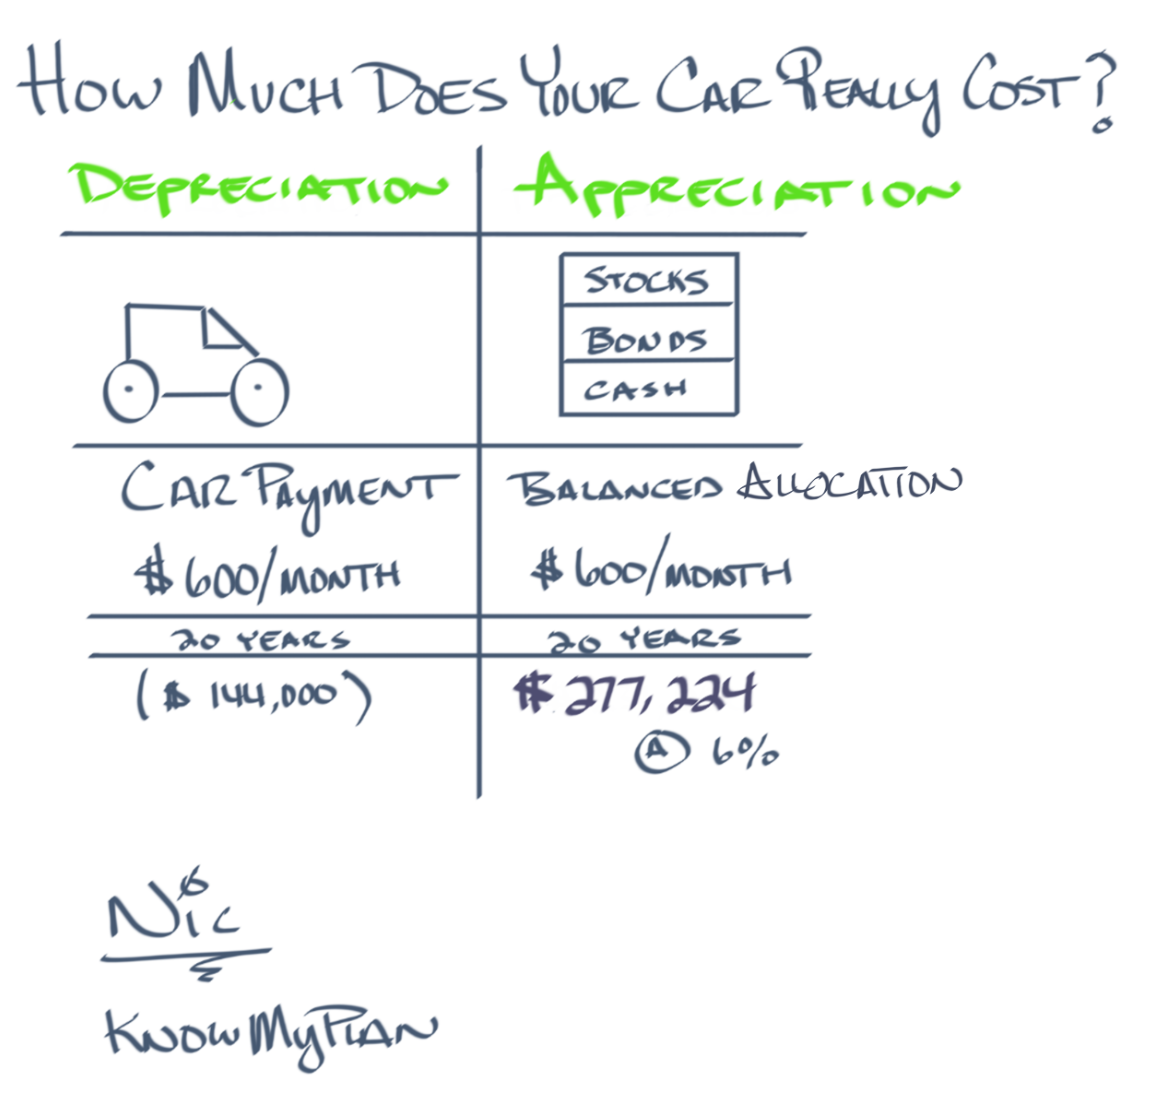 How Much Does Your Car Really Cost? Thumbnail